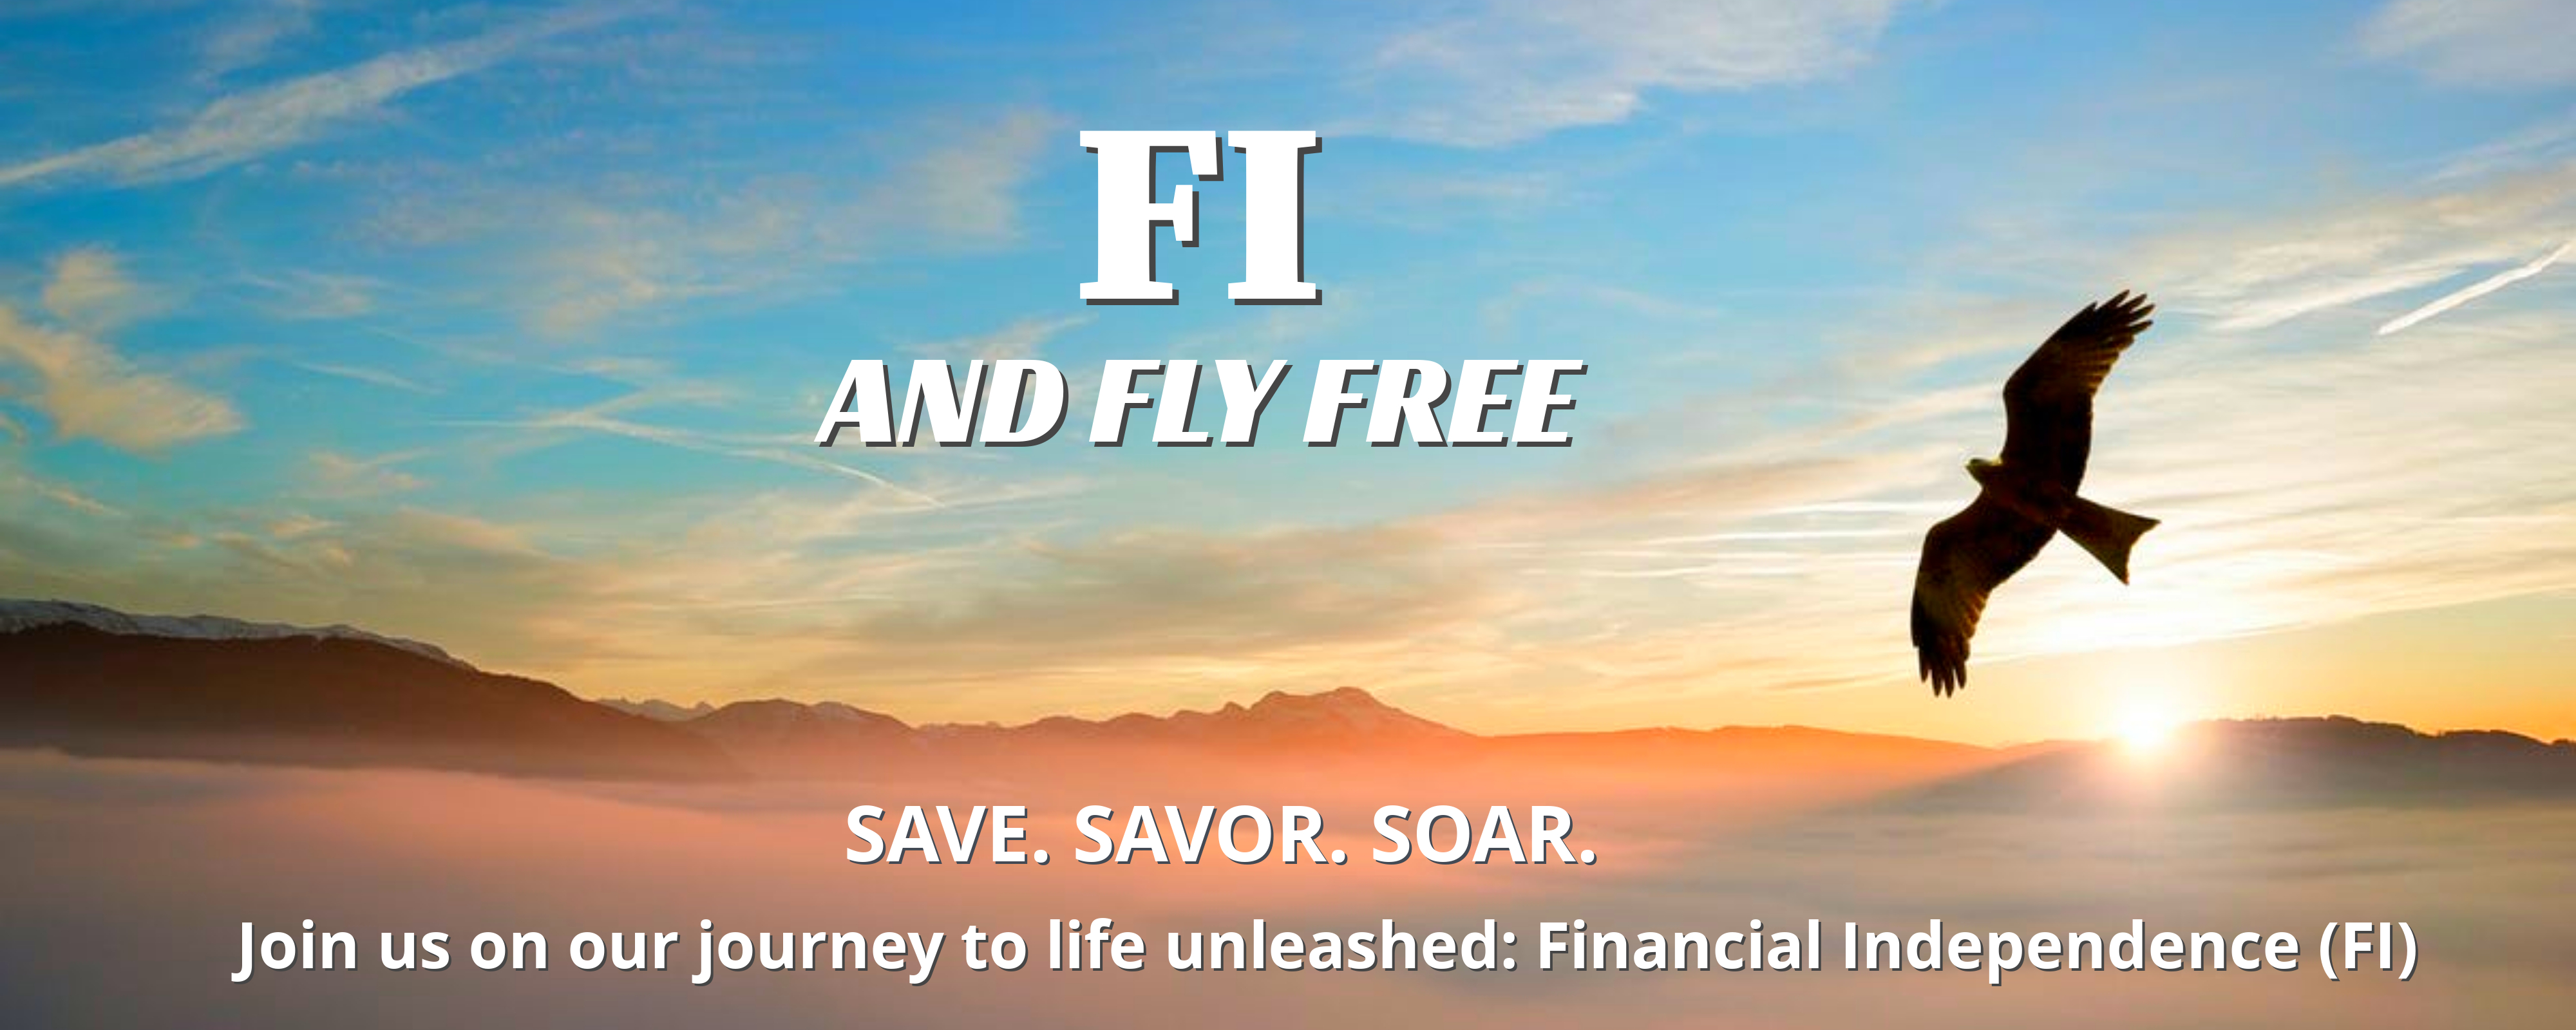 FI and Fly Free: Financial Independence